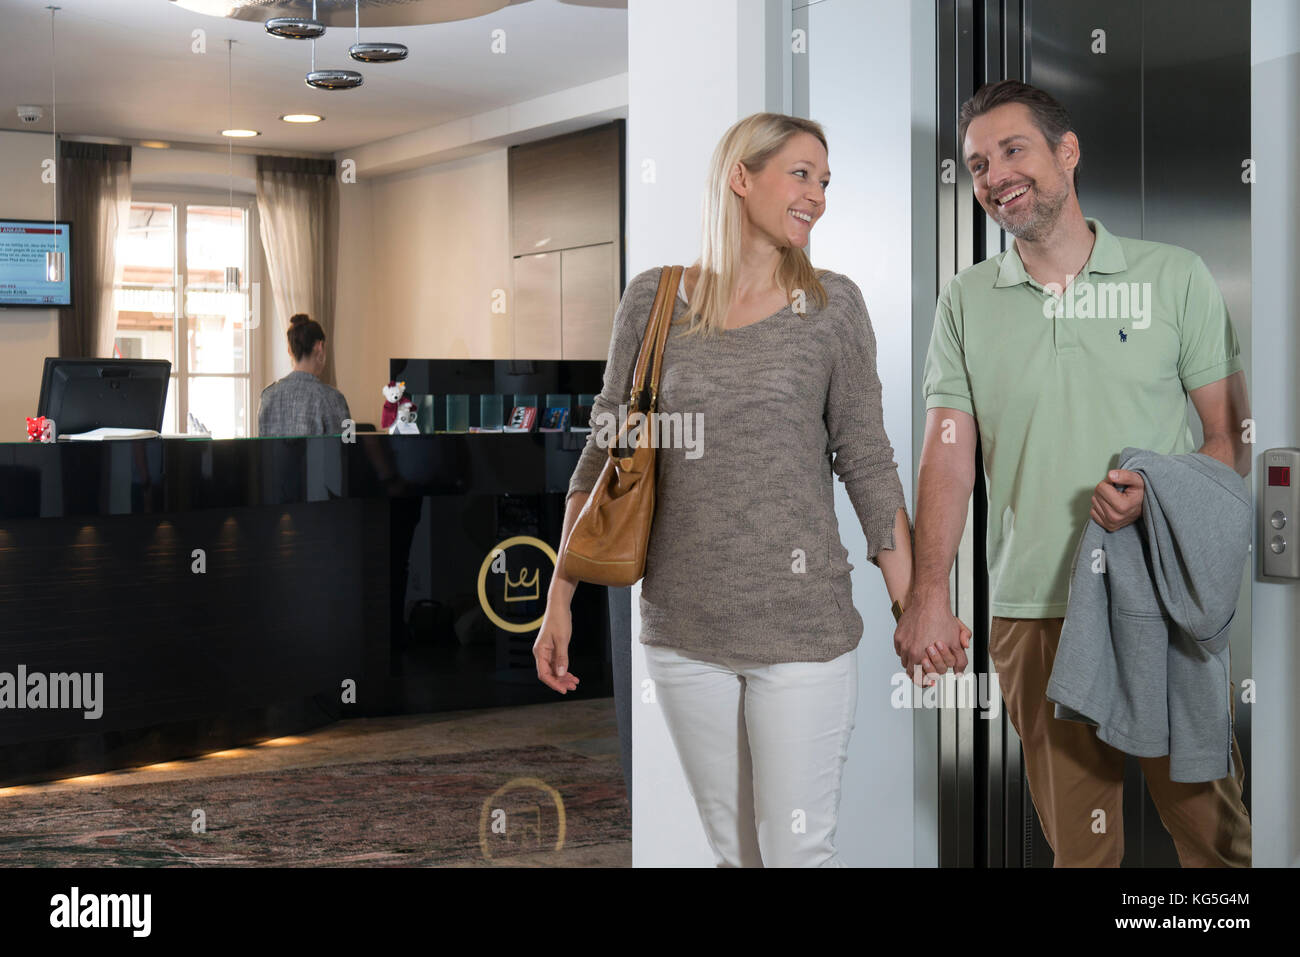 Couple comes laughingly out of the elevator in the hotel, hand in hand - Stock Image